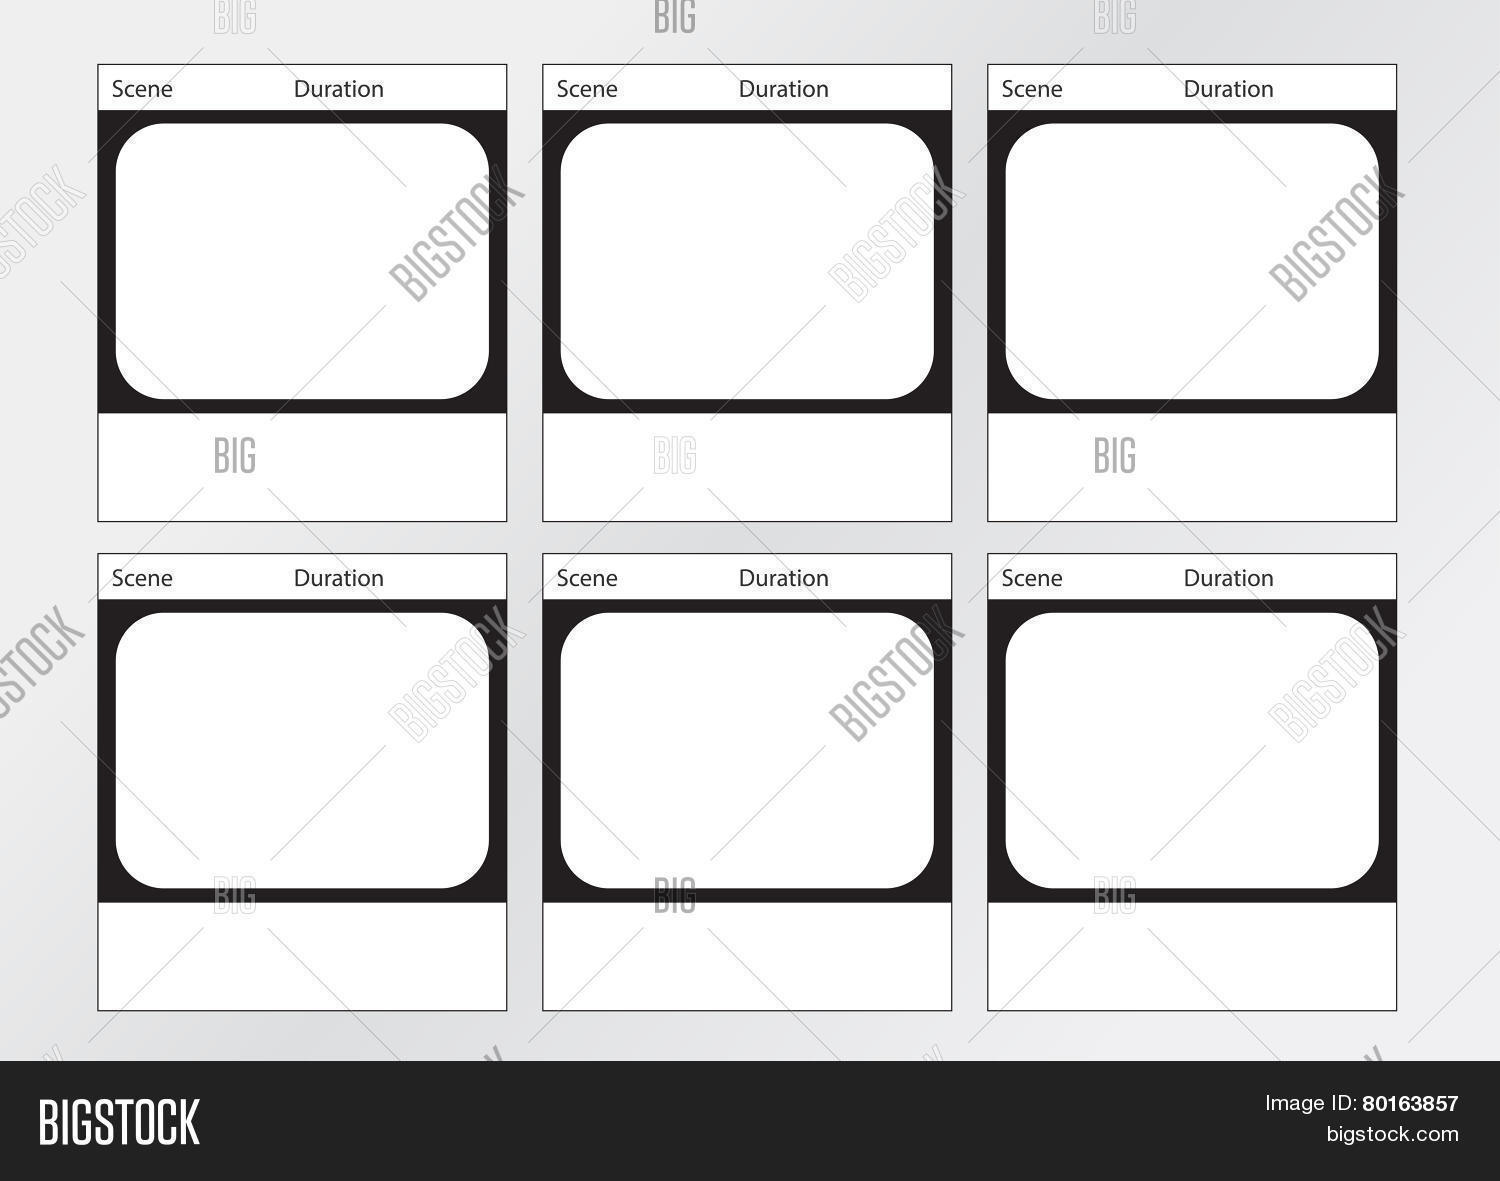 Tv commercial frame storyboard vector photo bigstock tv commercial frame storyboard template 6 frames saigontimesfo